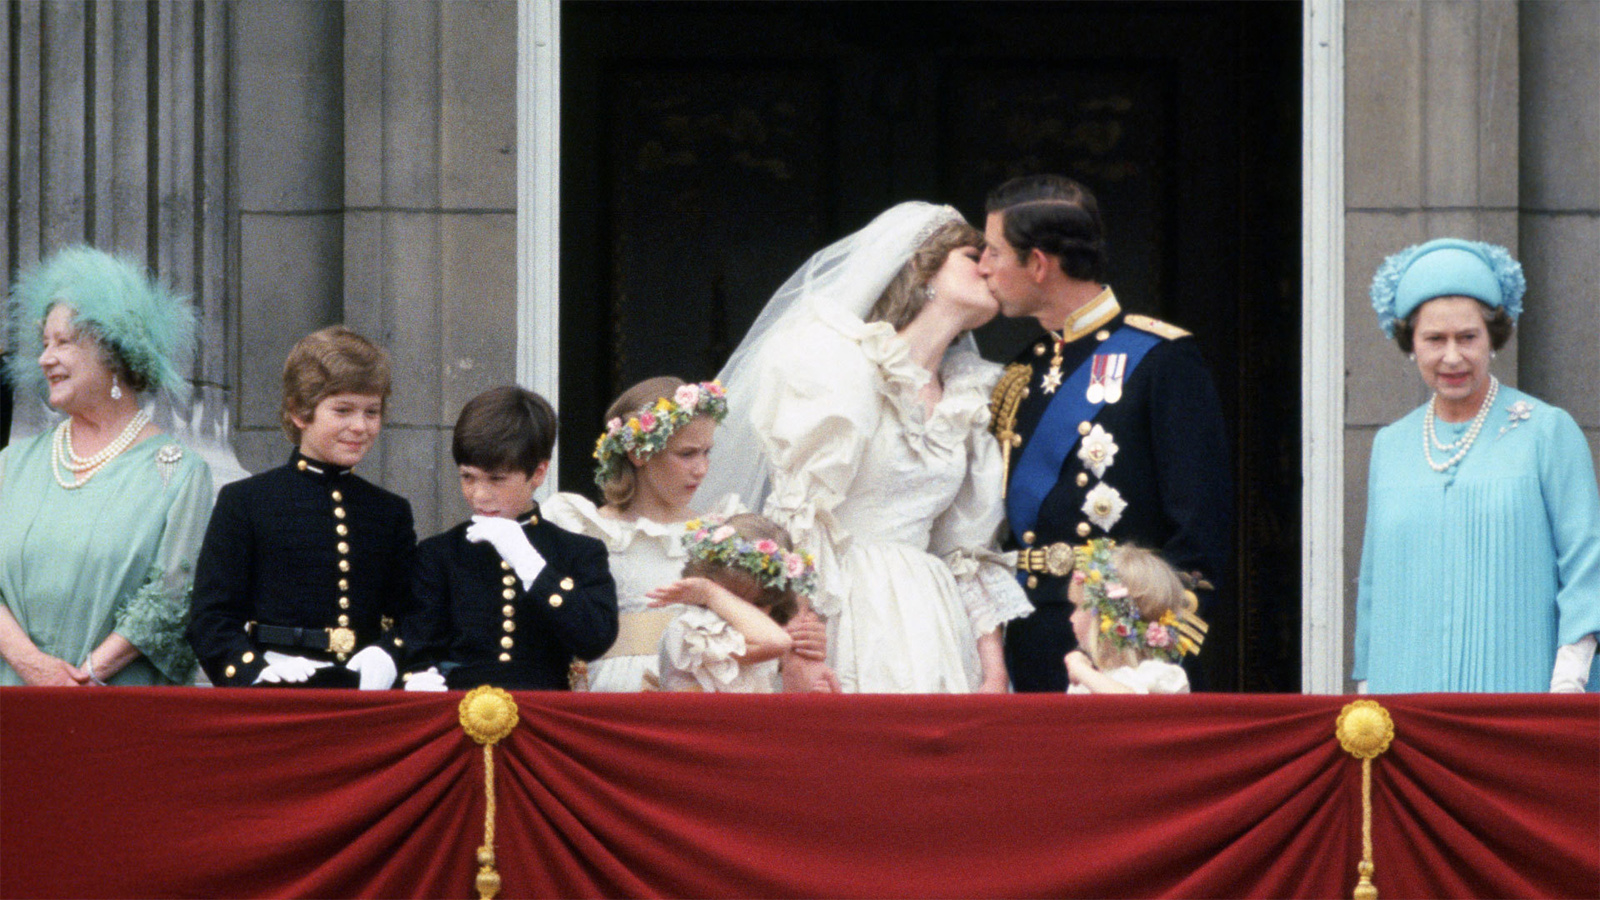 Prince Charles and Princess Diana kissing on the balcony on their wedding day, surrounded by members of the royal family.